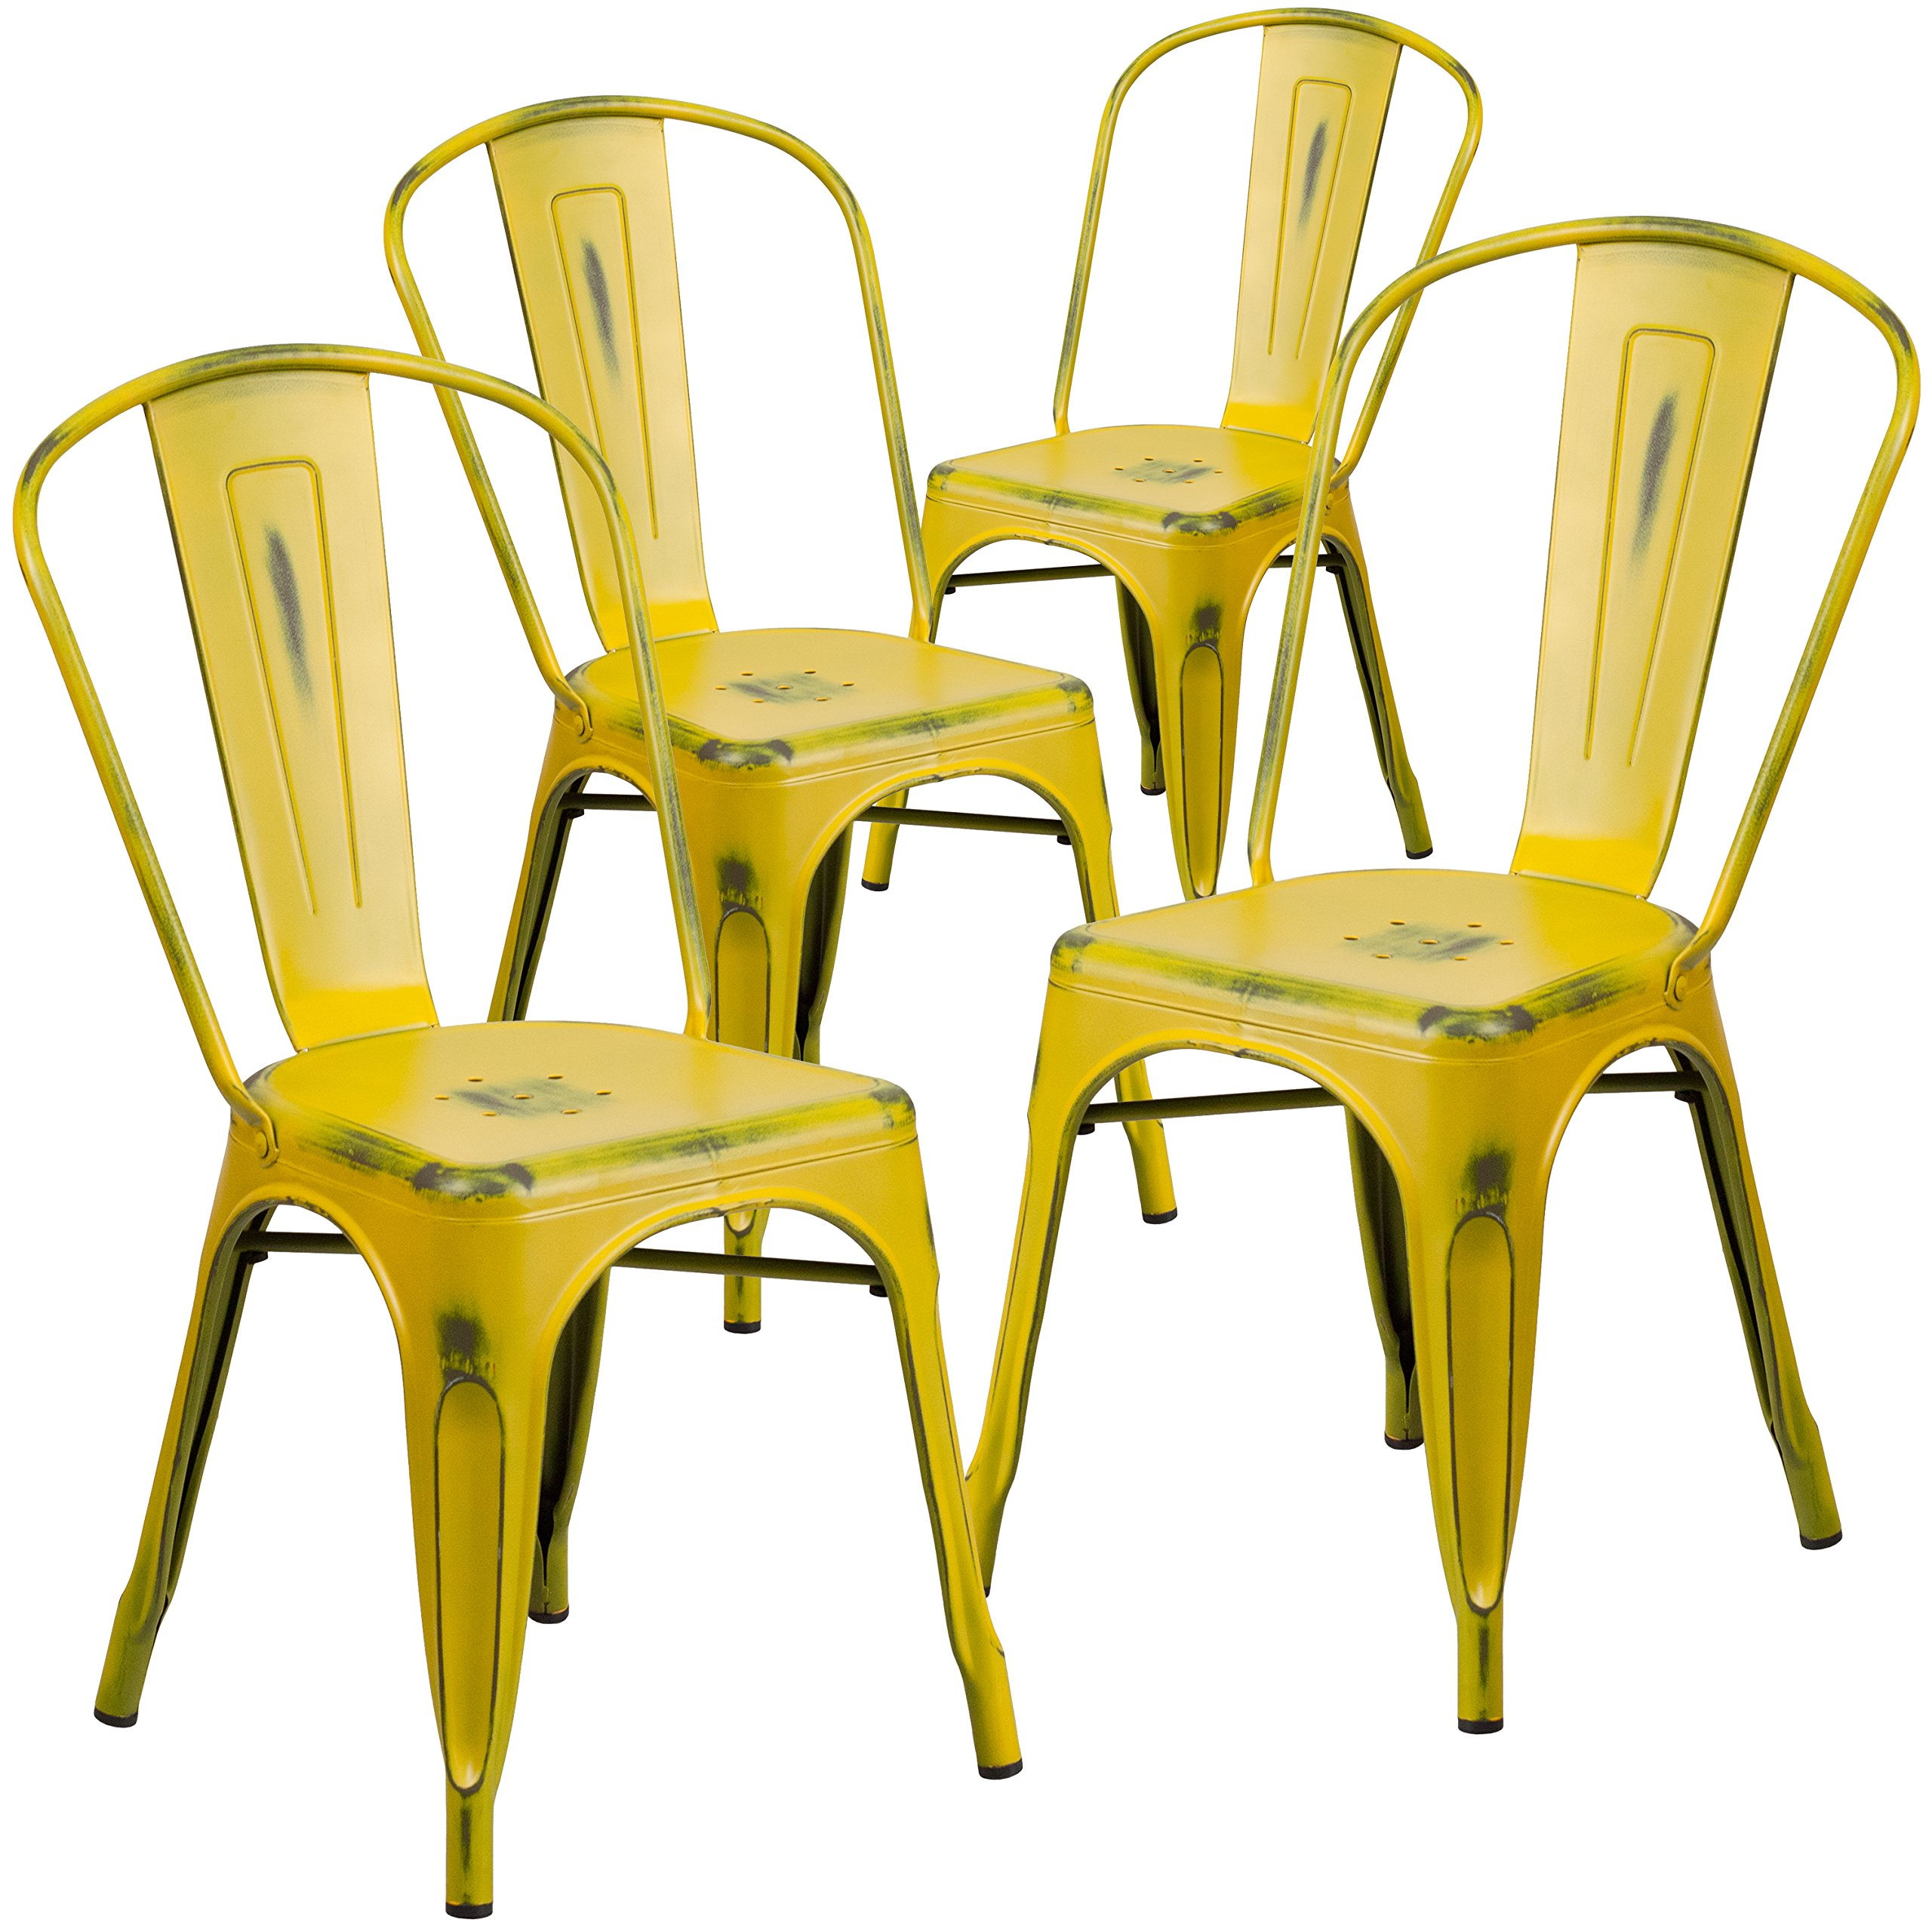 Flash Furniture 4 Pk. Distressed Yellow Metal Indoor-Outdoor Stackable Chair by Flash Furniture